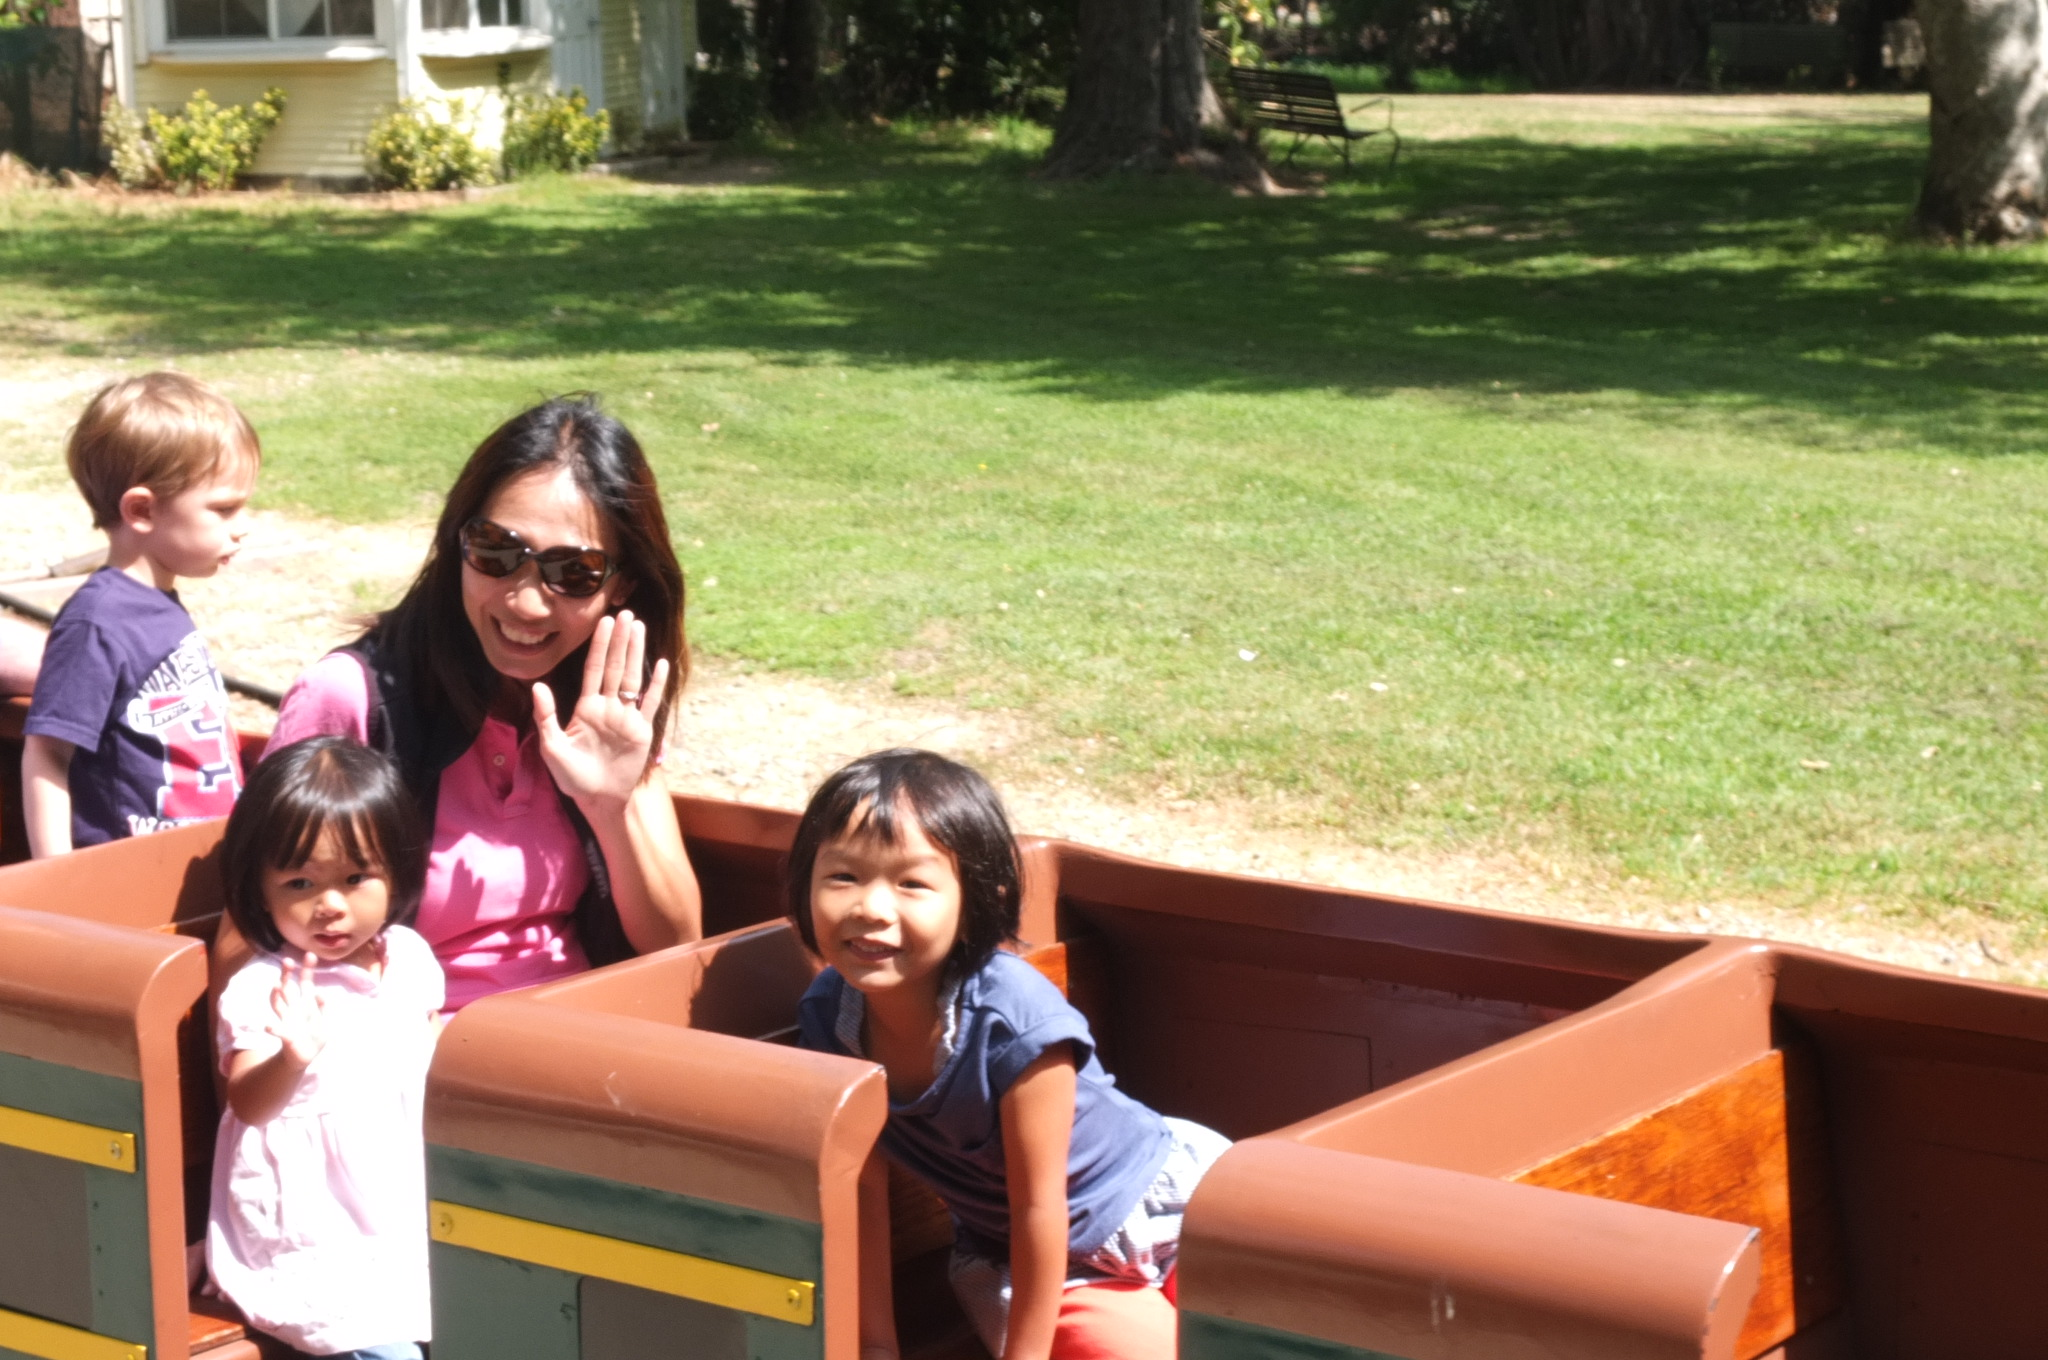 Kiddy train ride in Griffith Park LA